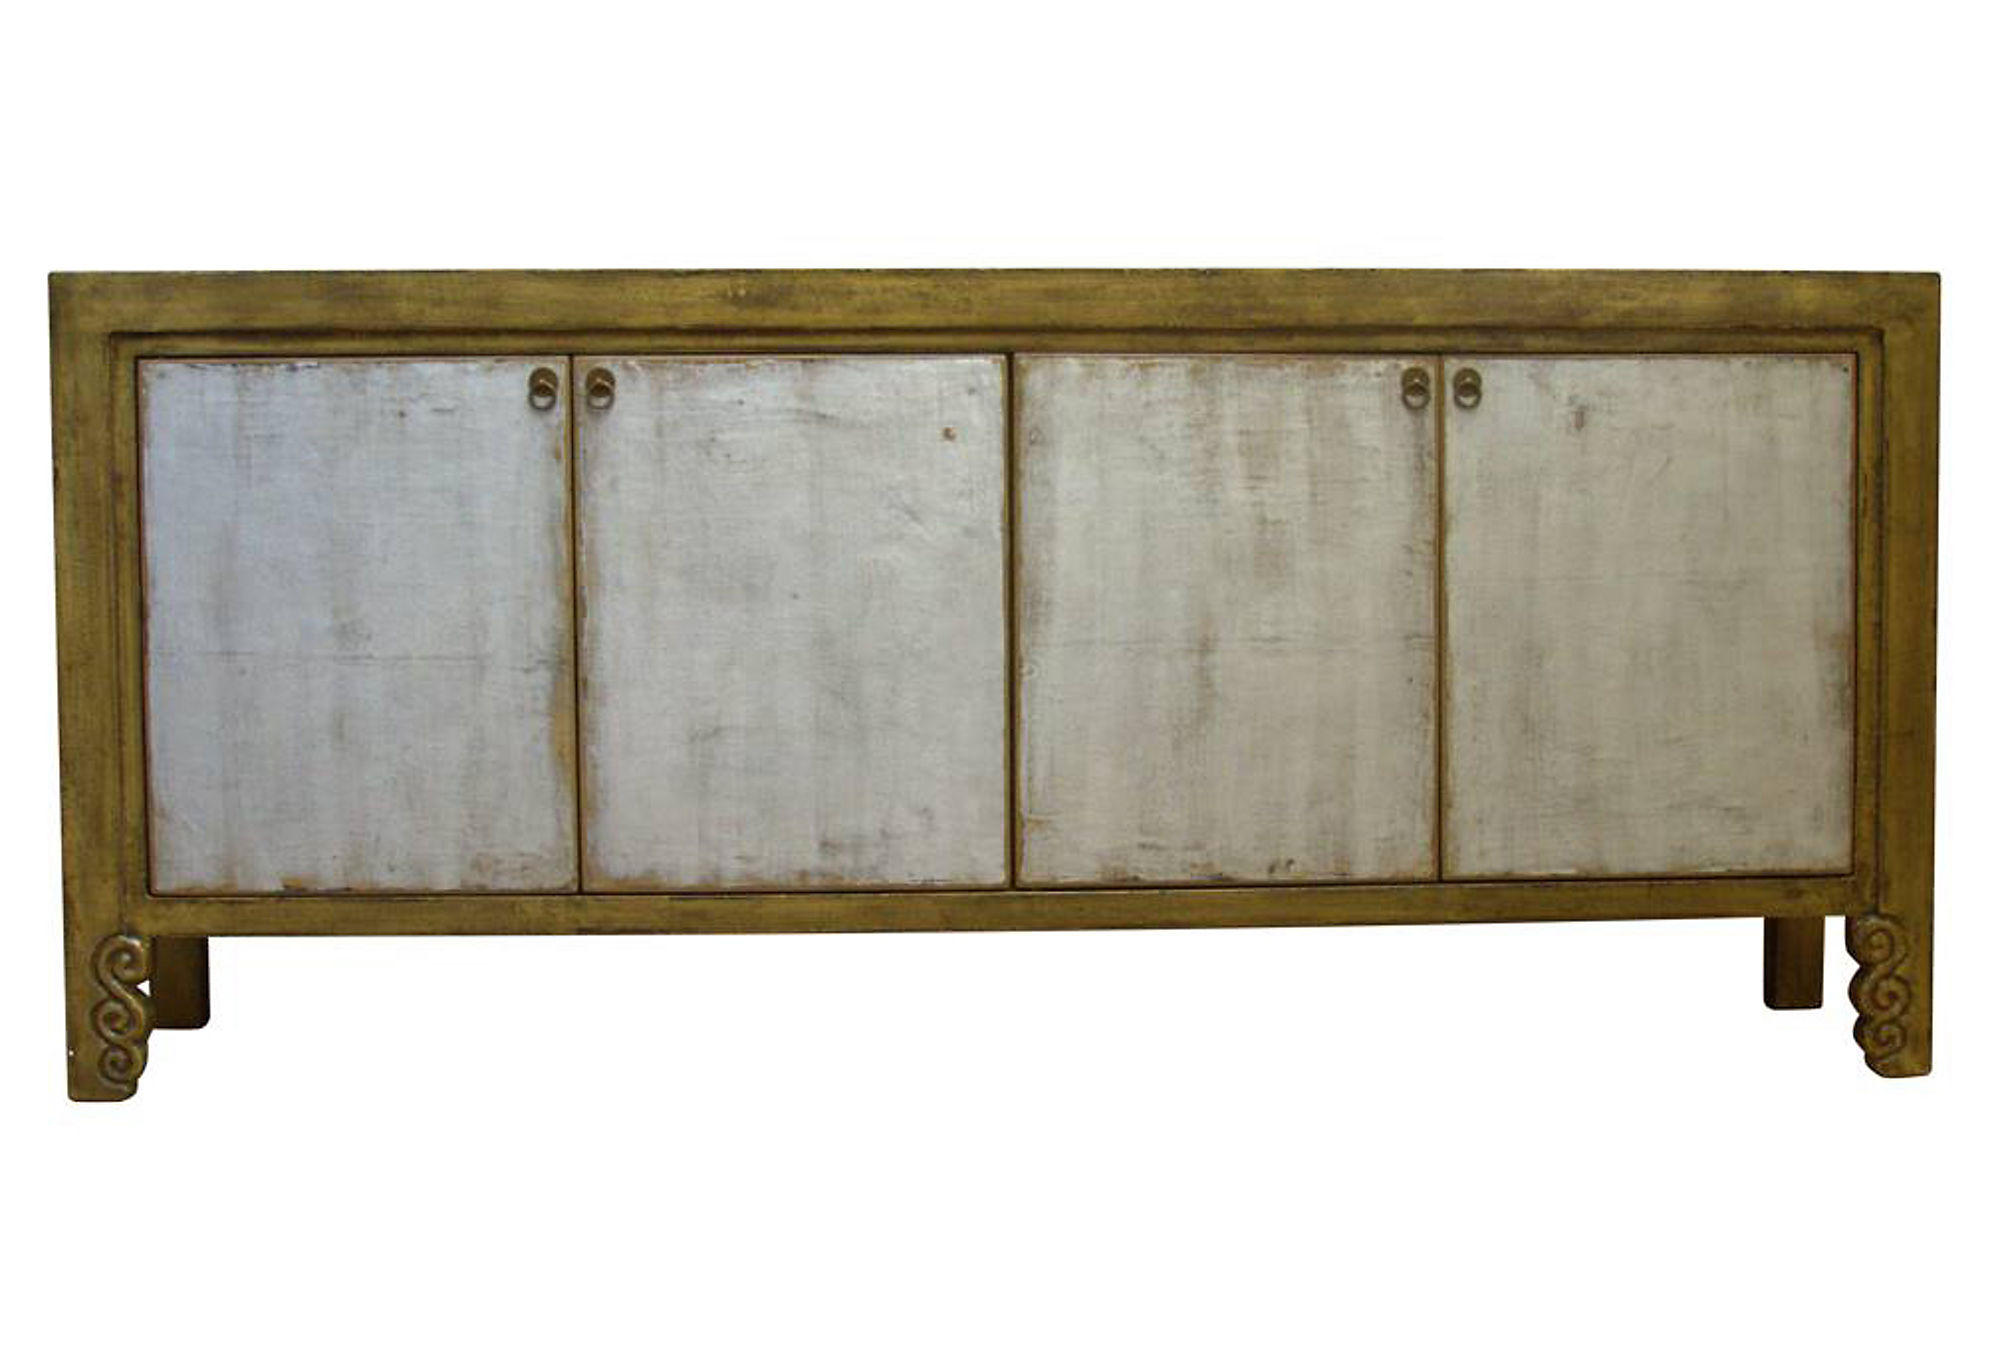 Madera home june sideboard gold silver from one kings lane for Sideboard gold